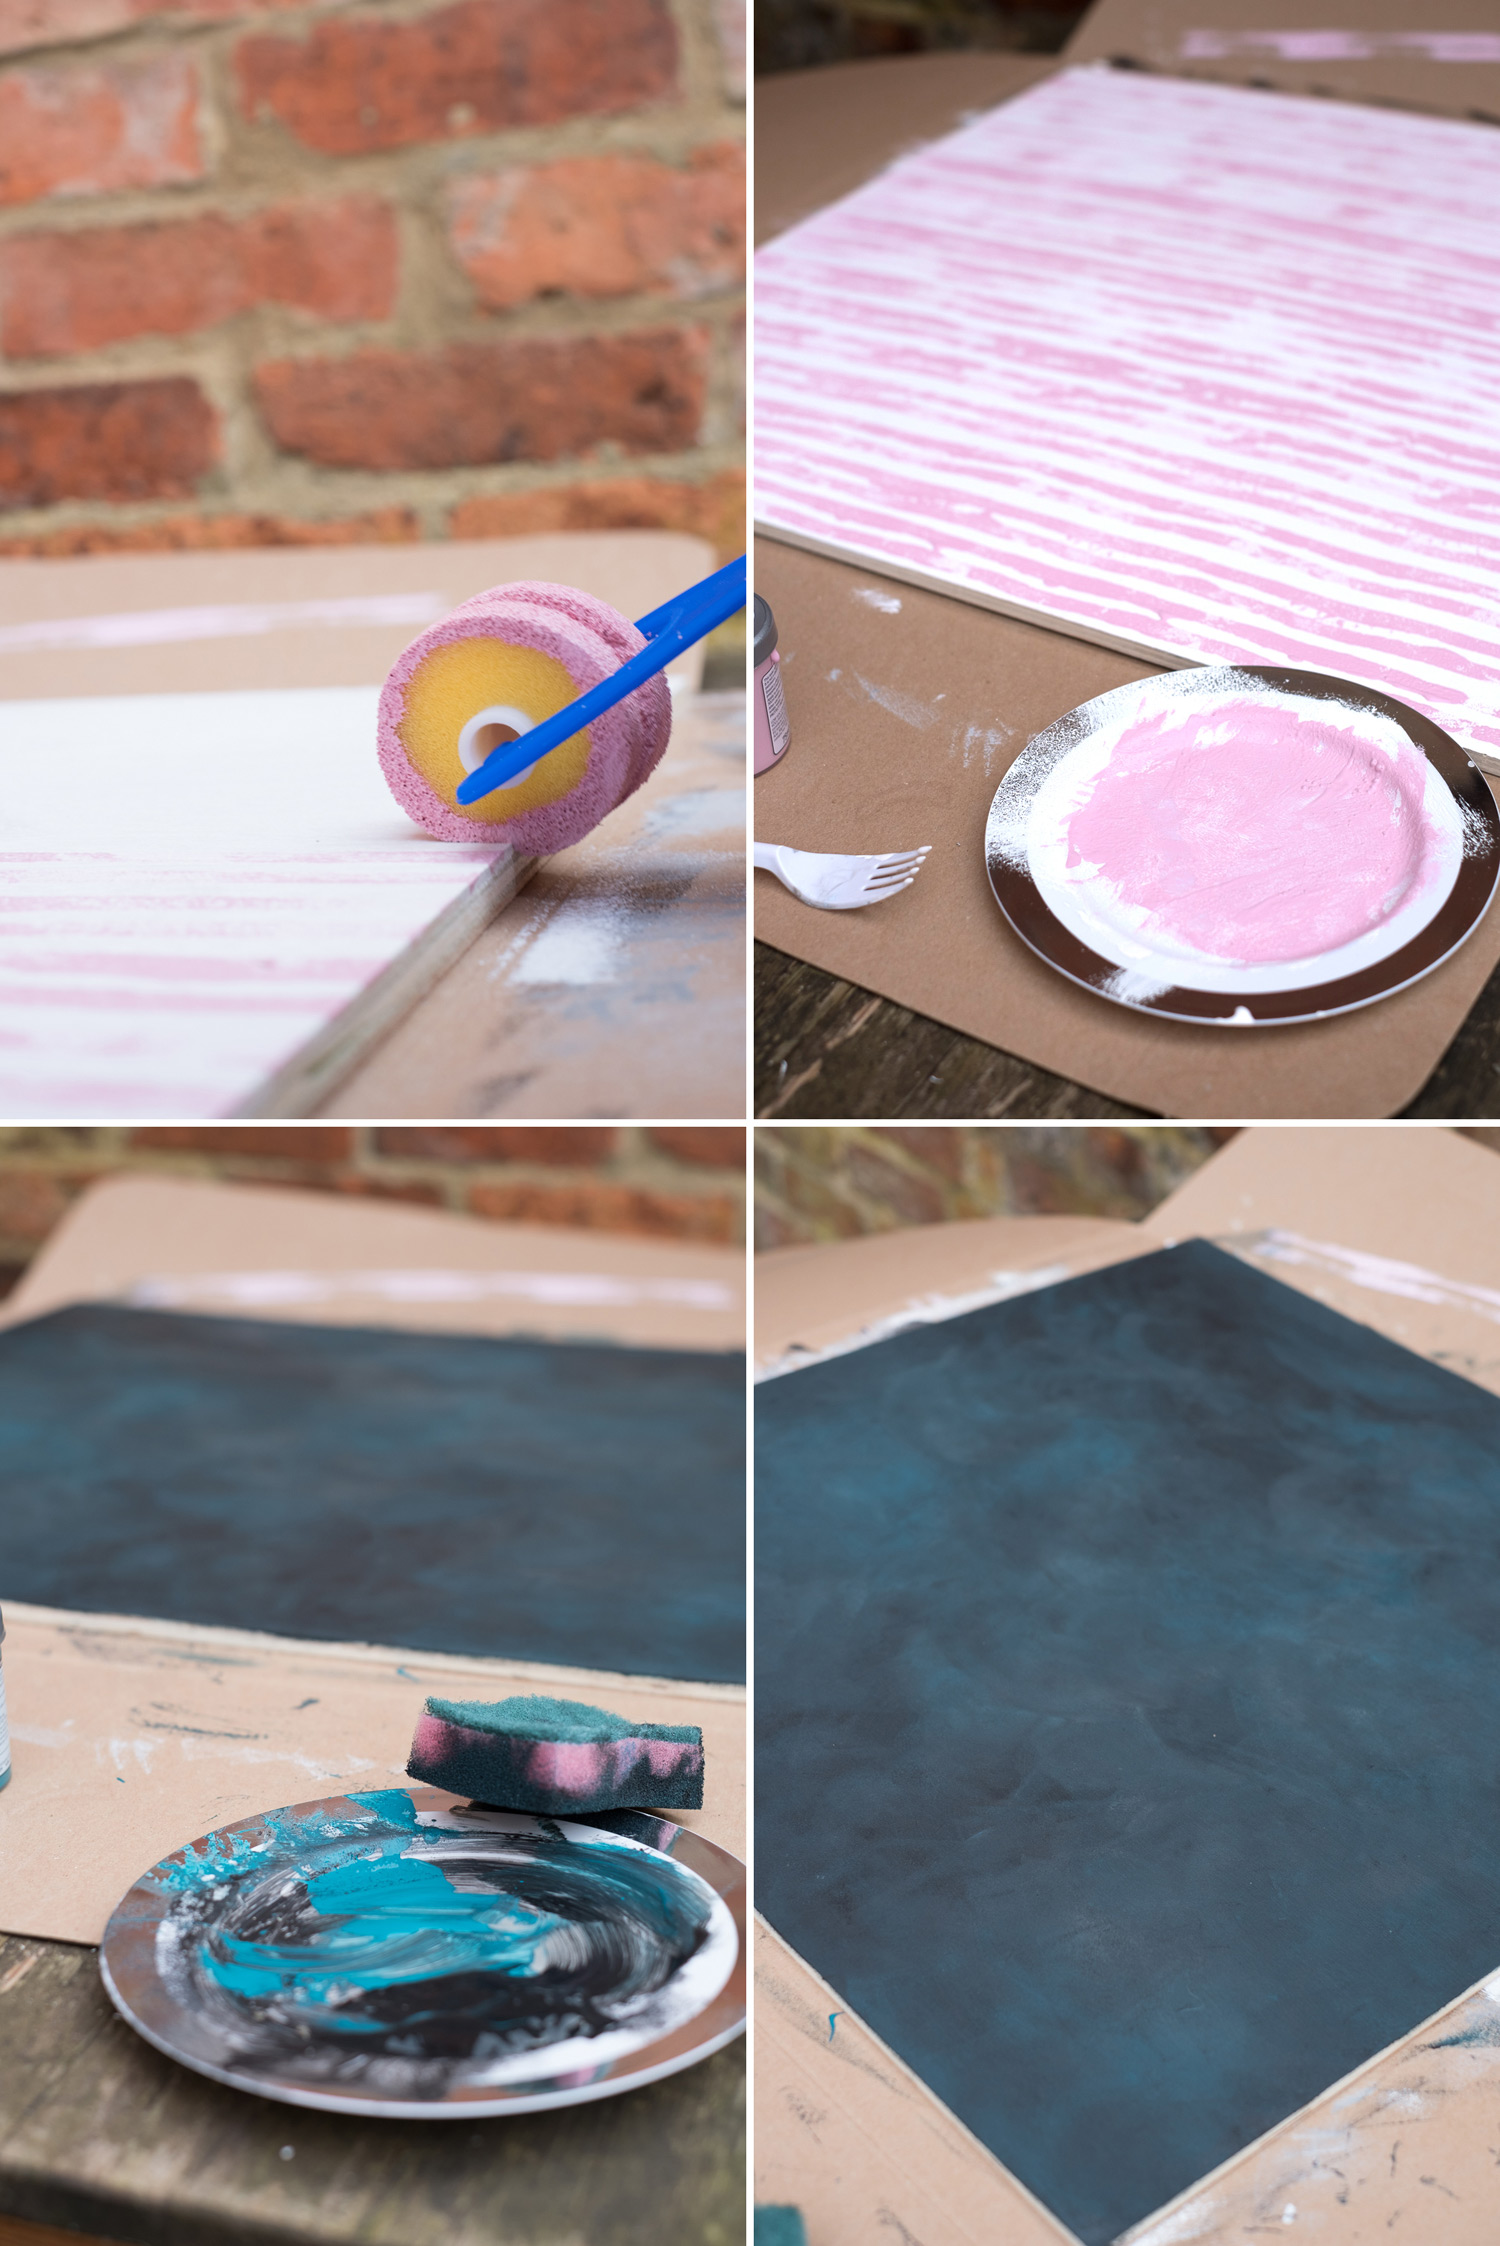 Image: Top: pink stripes created with a child's foam painting roller. Bottom: blue, black, and grey...